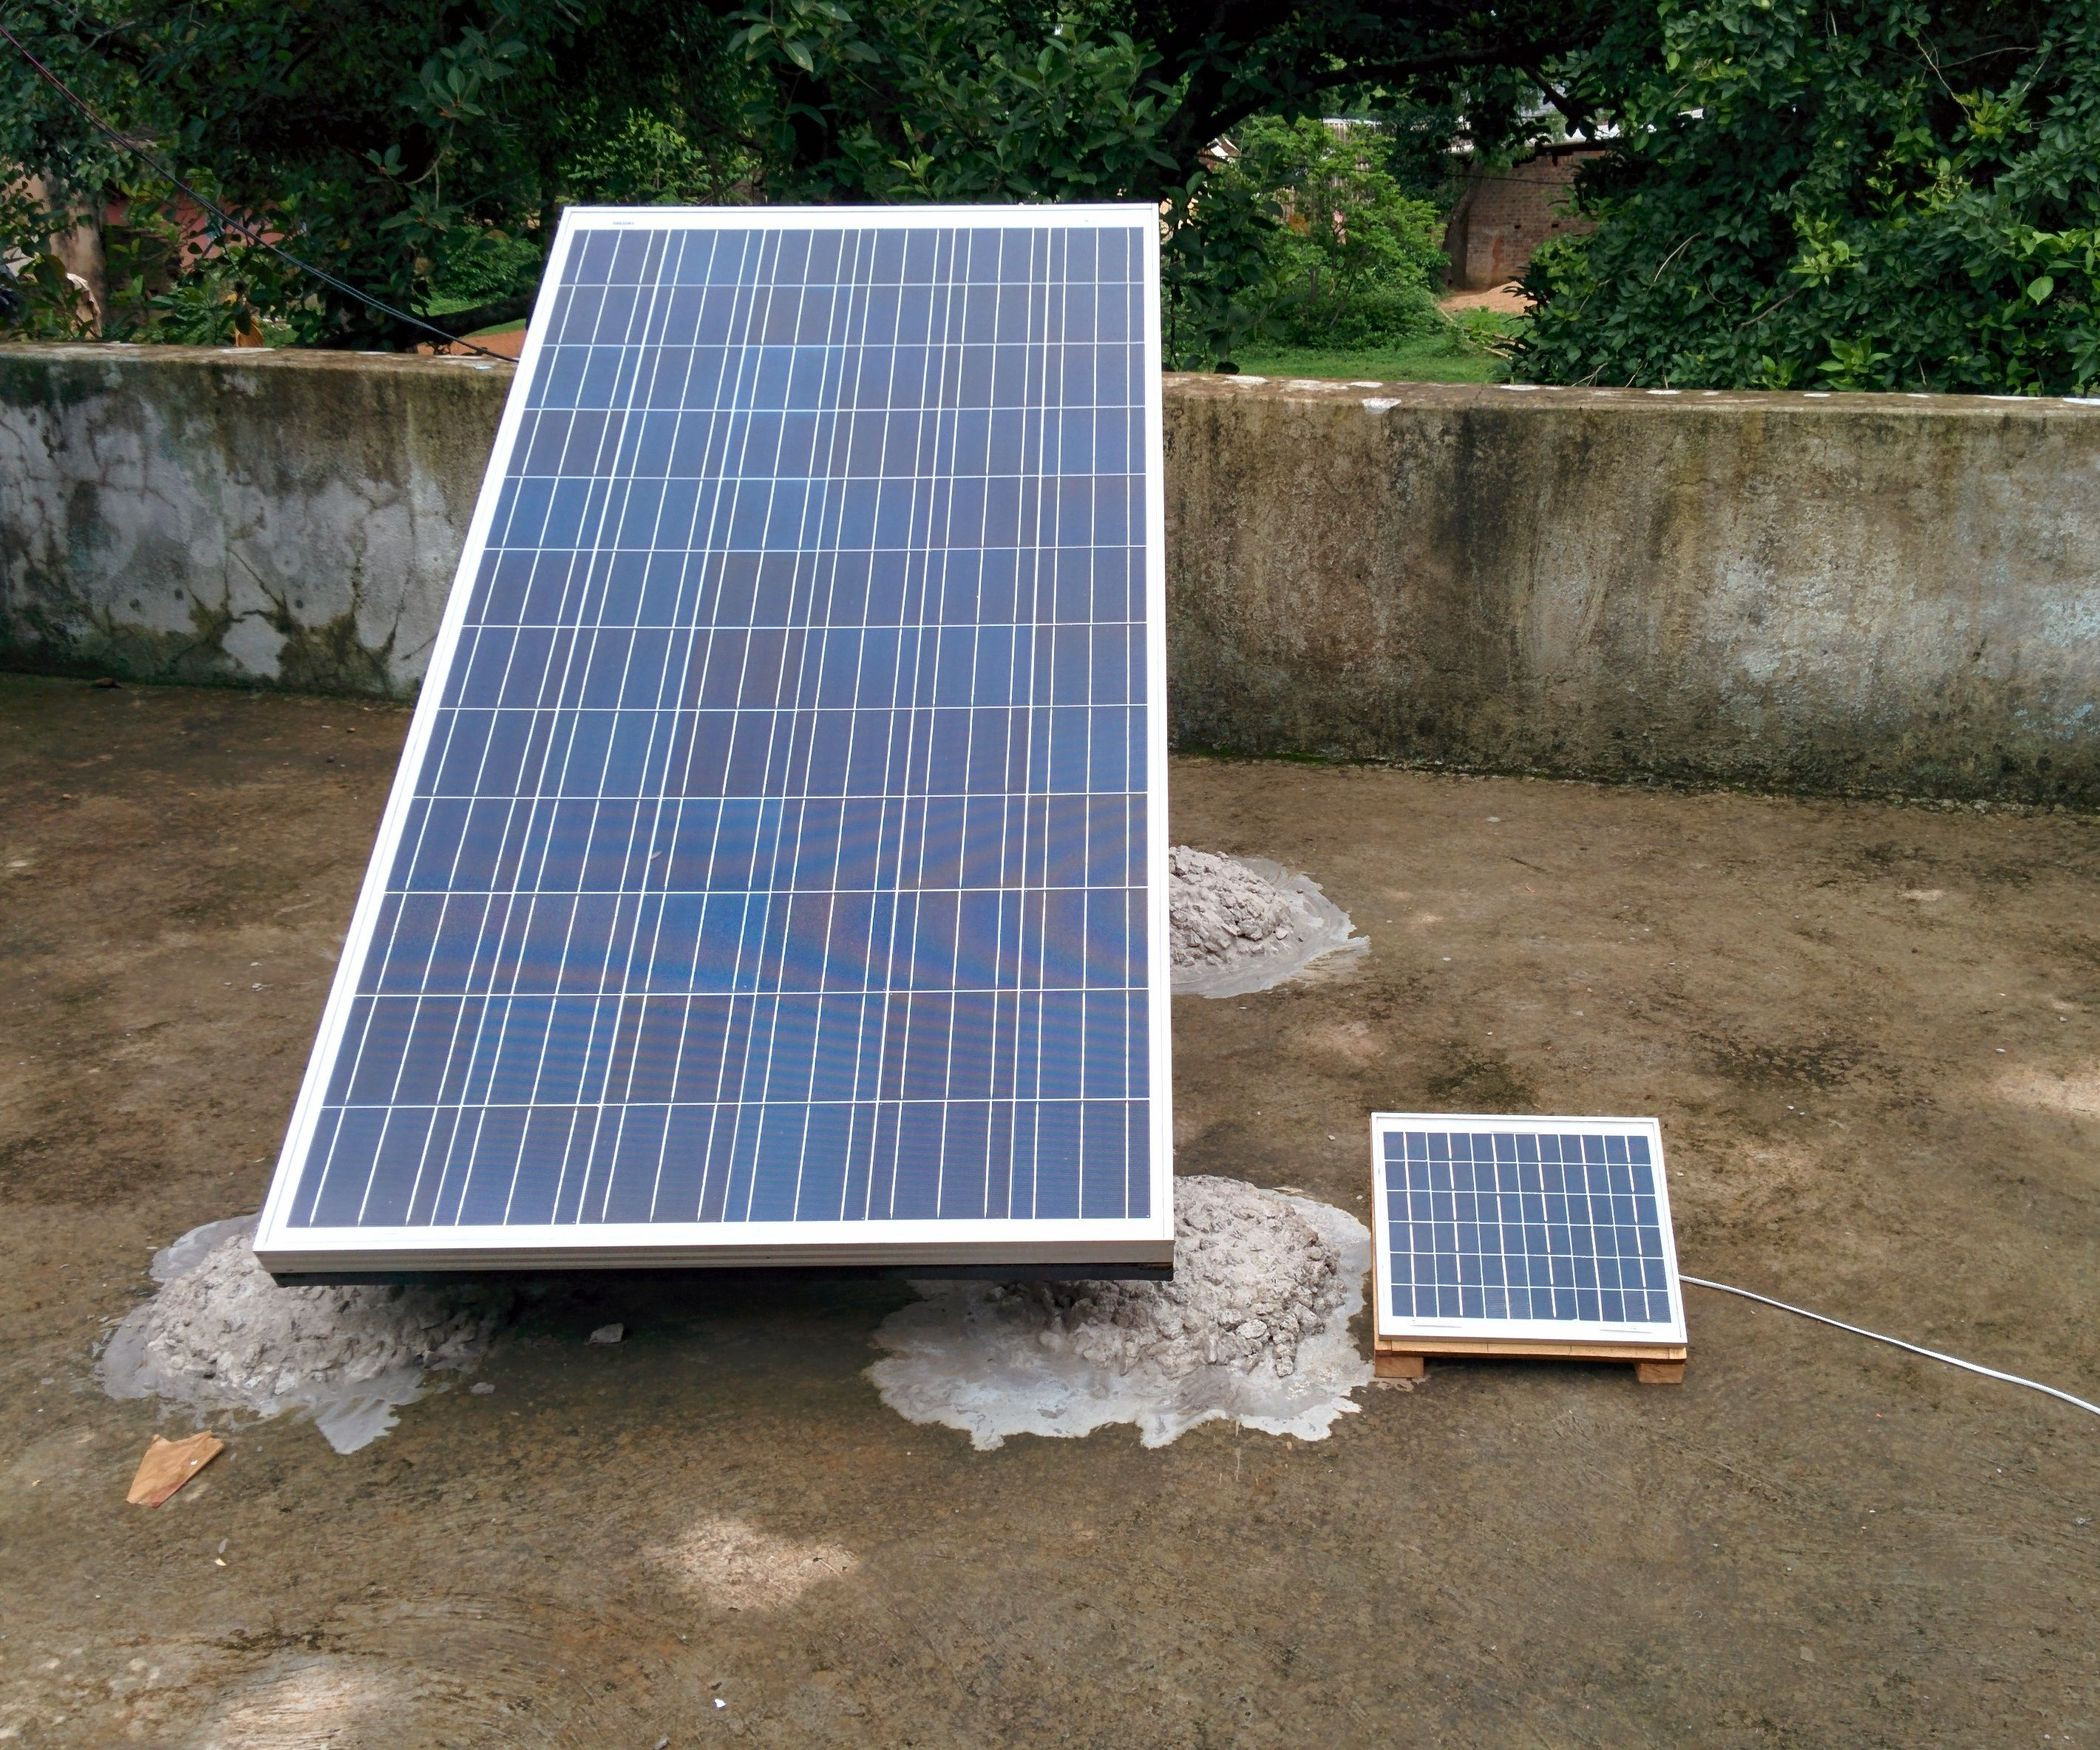 Best ideas about DIY Solar Panel . Save or Pin DIY OFF GRID SOLAR SYSTEM Now.